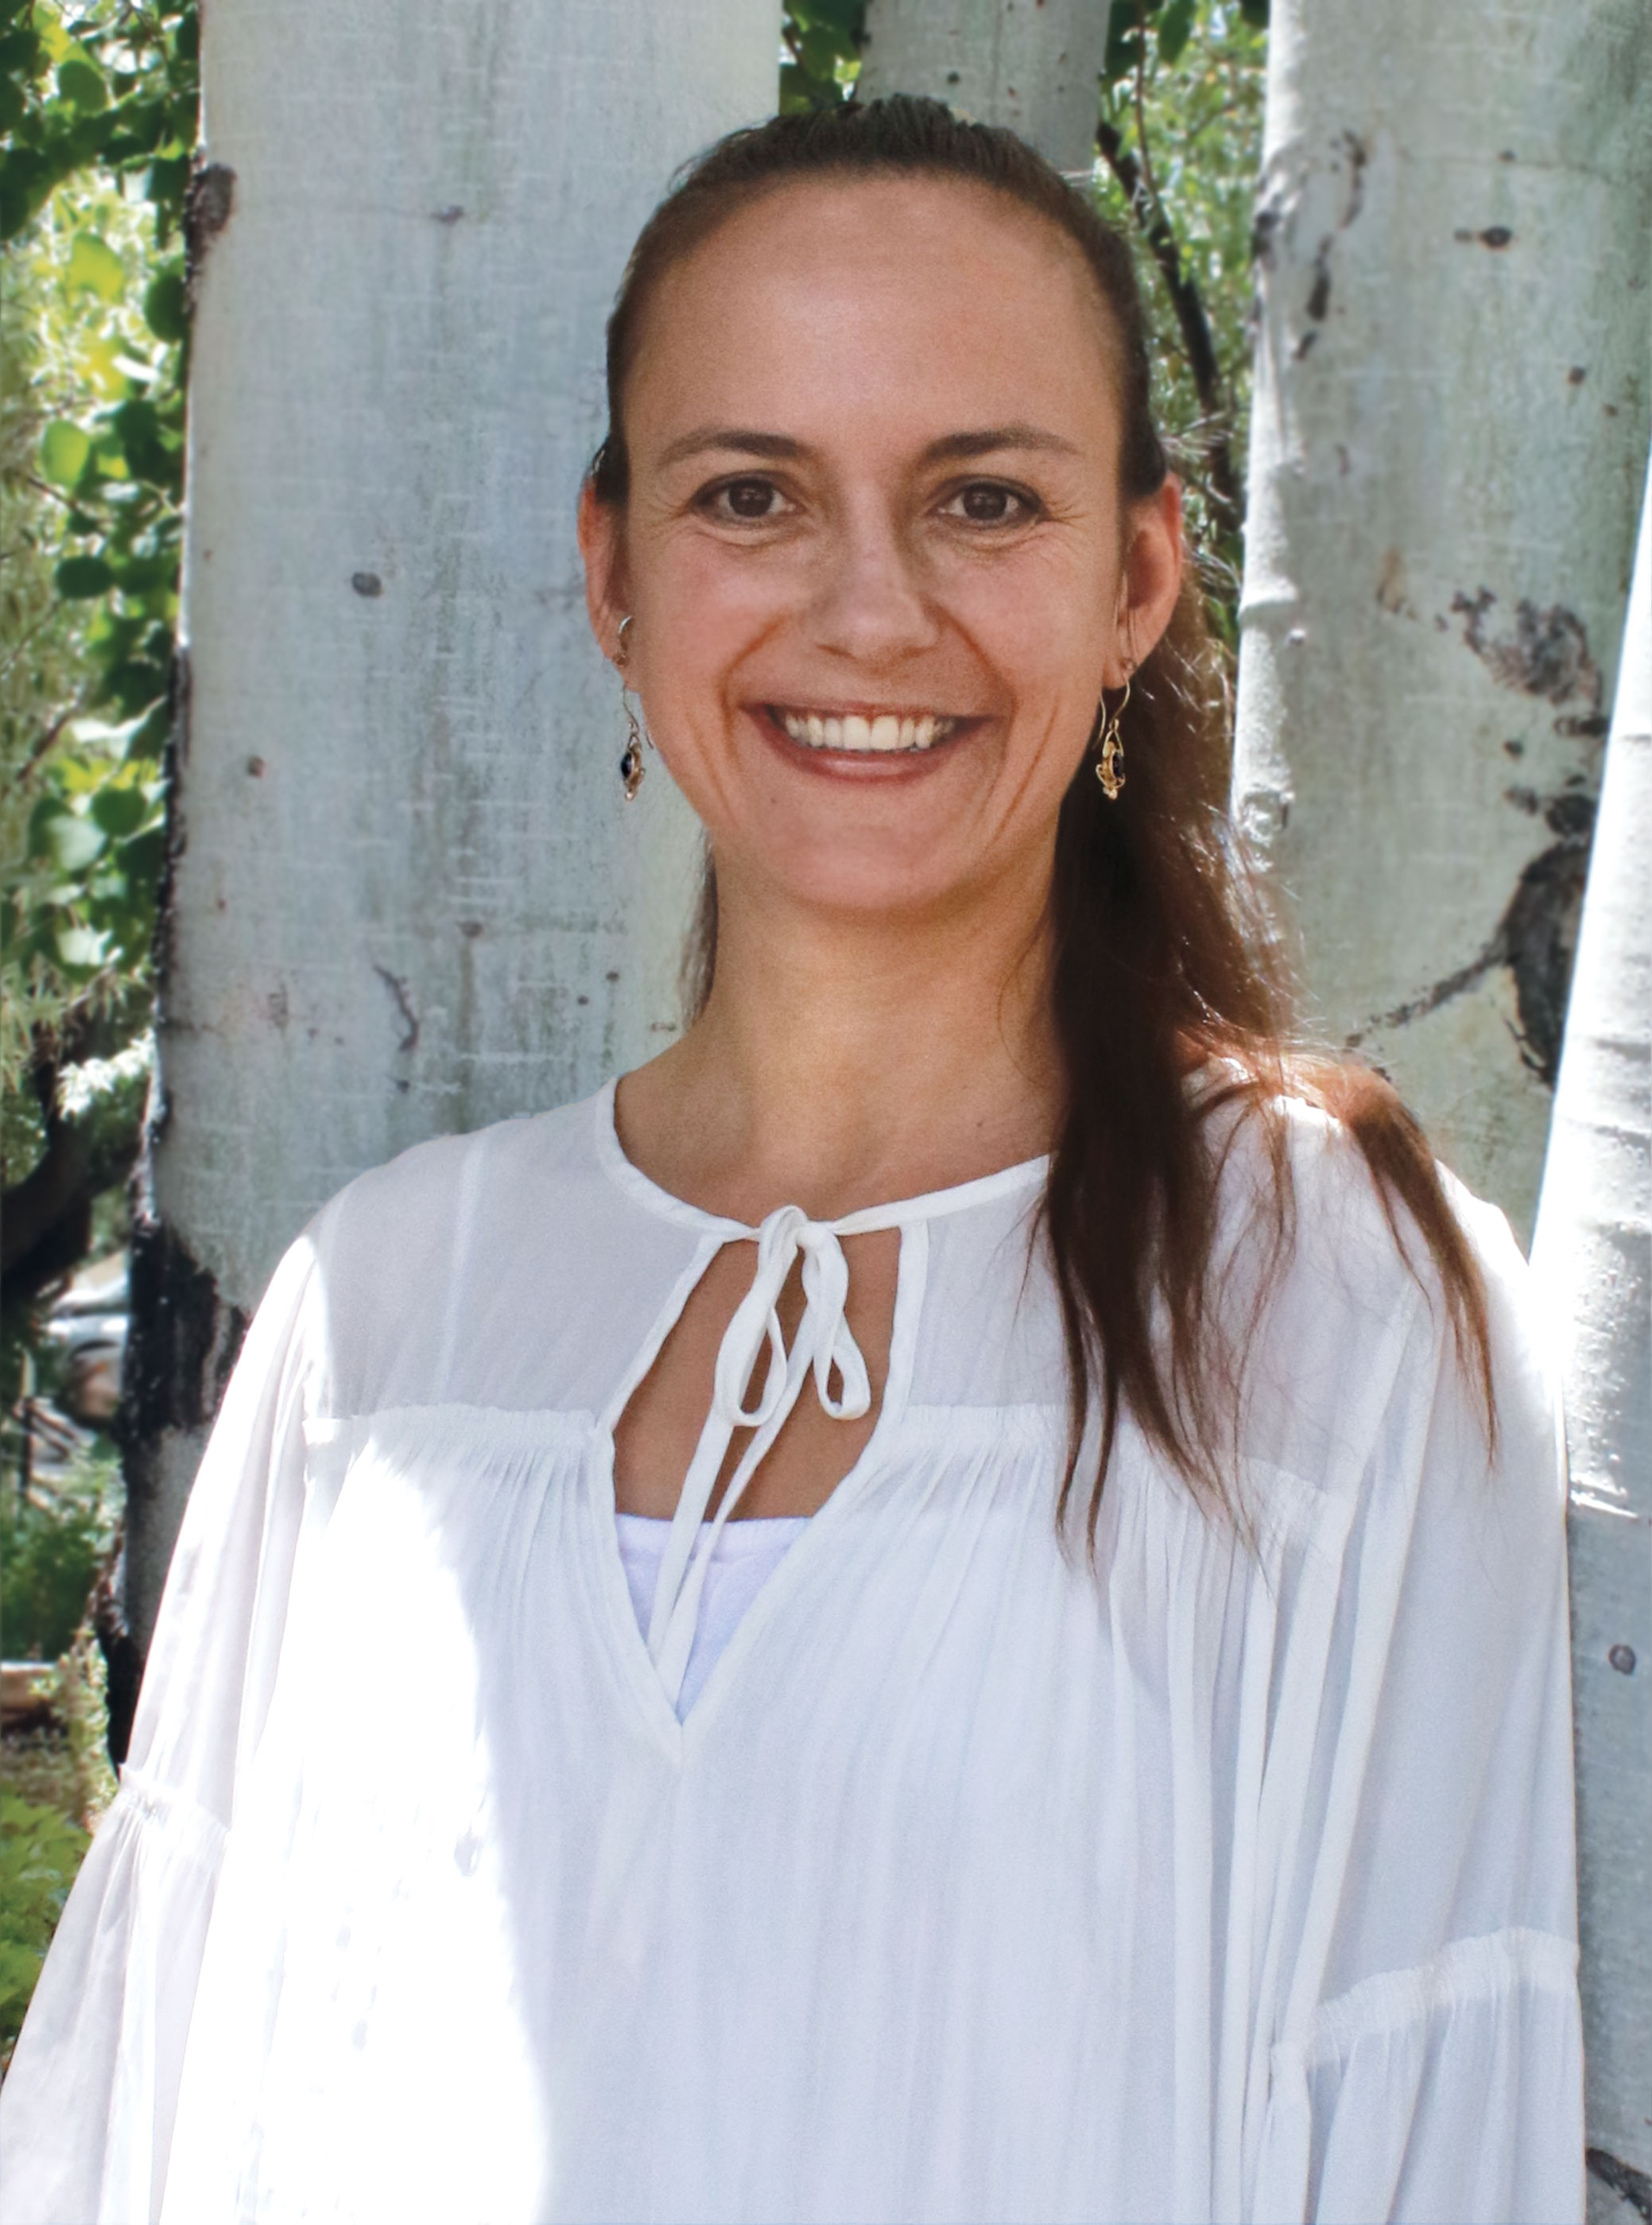 Lilly-Marie Blecher - Taos Whole Health Integrative Care